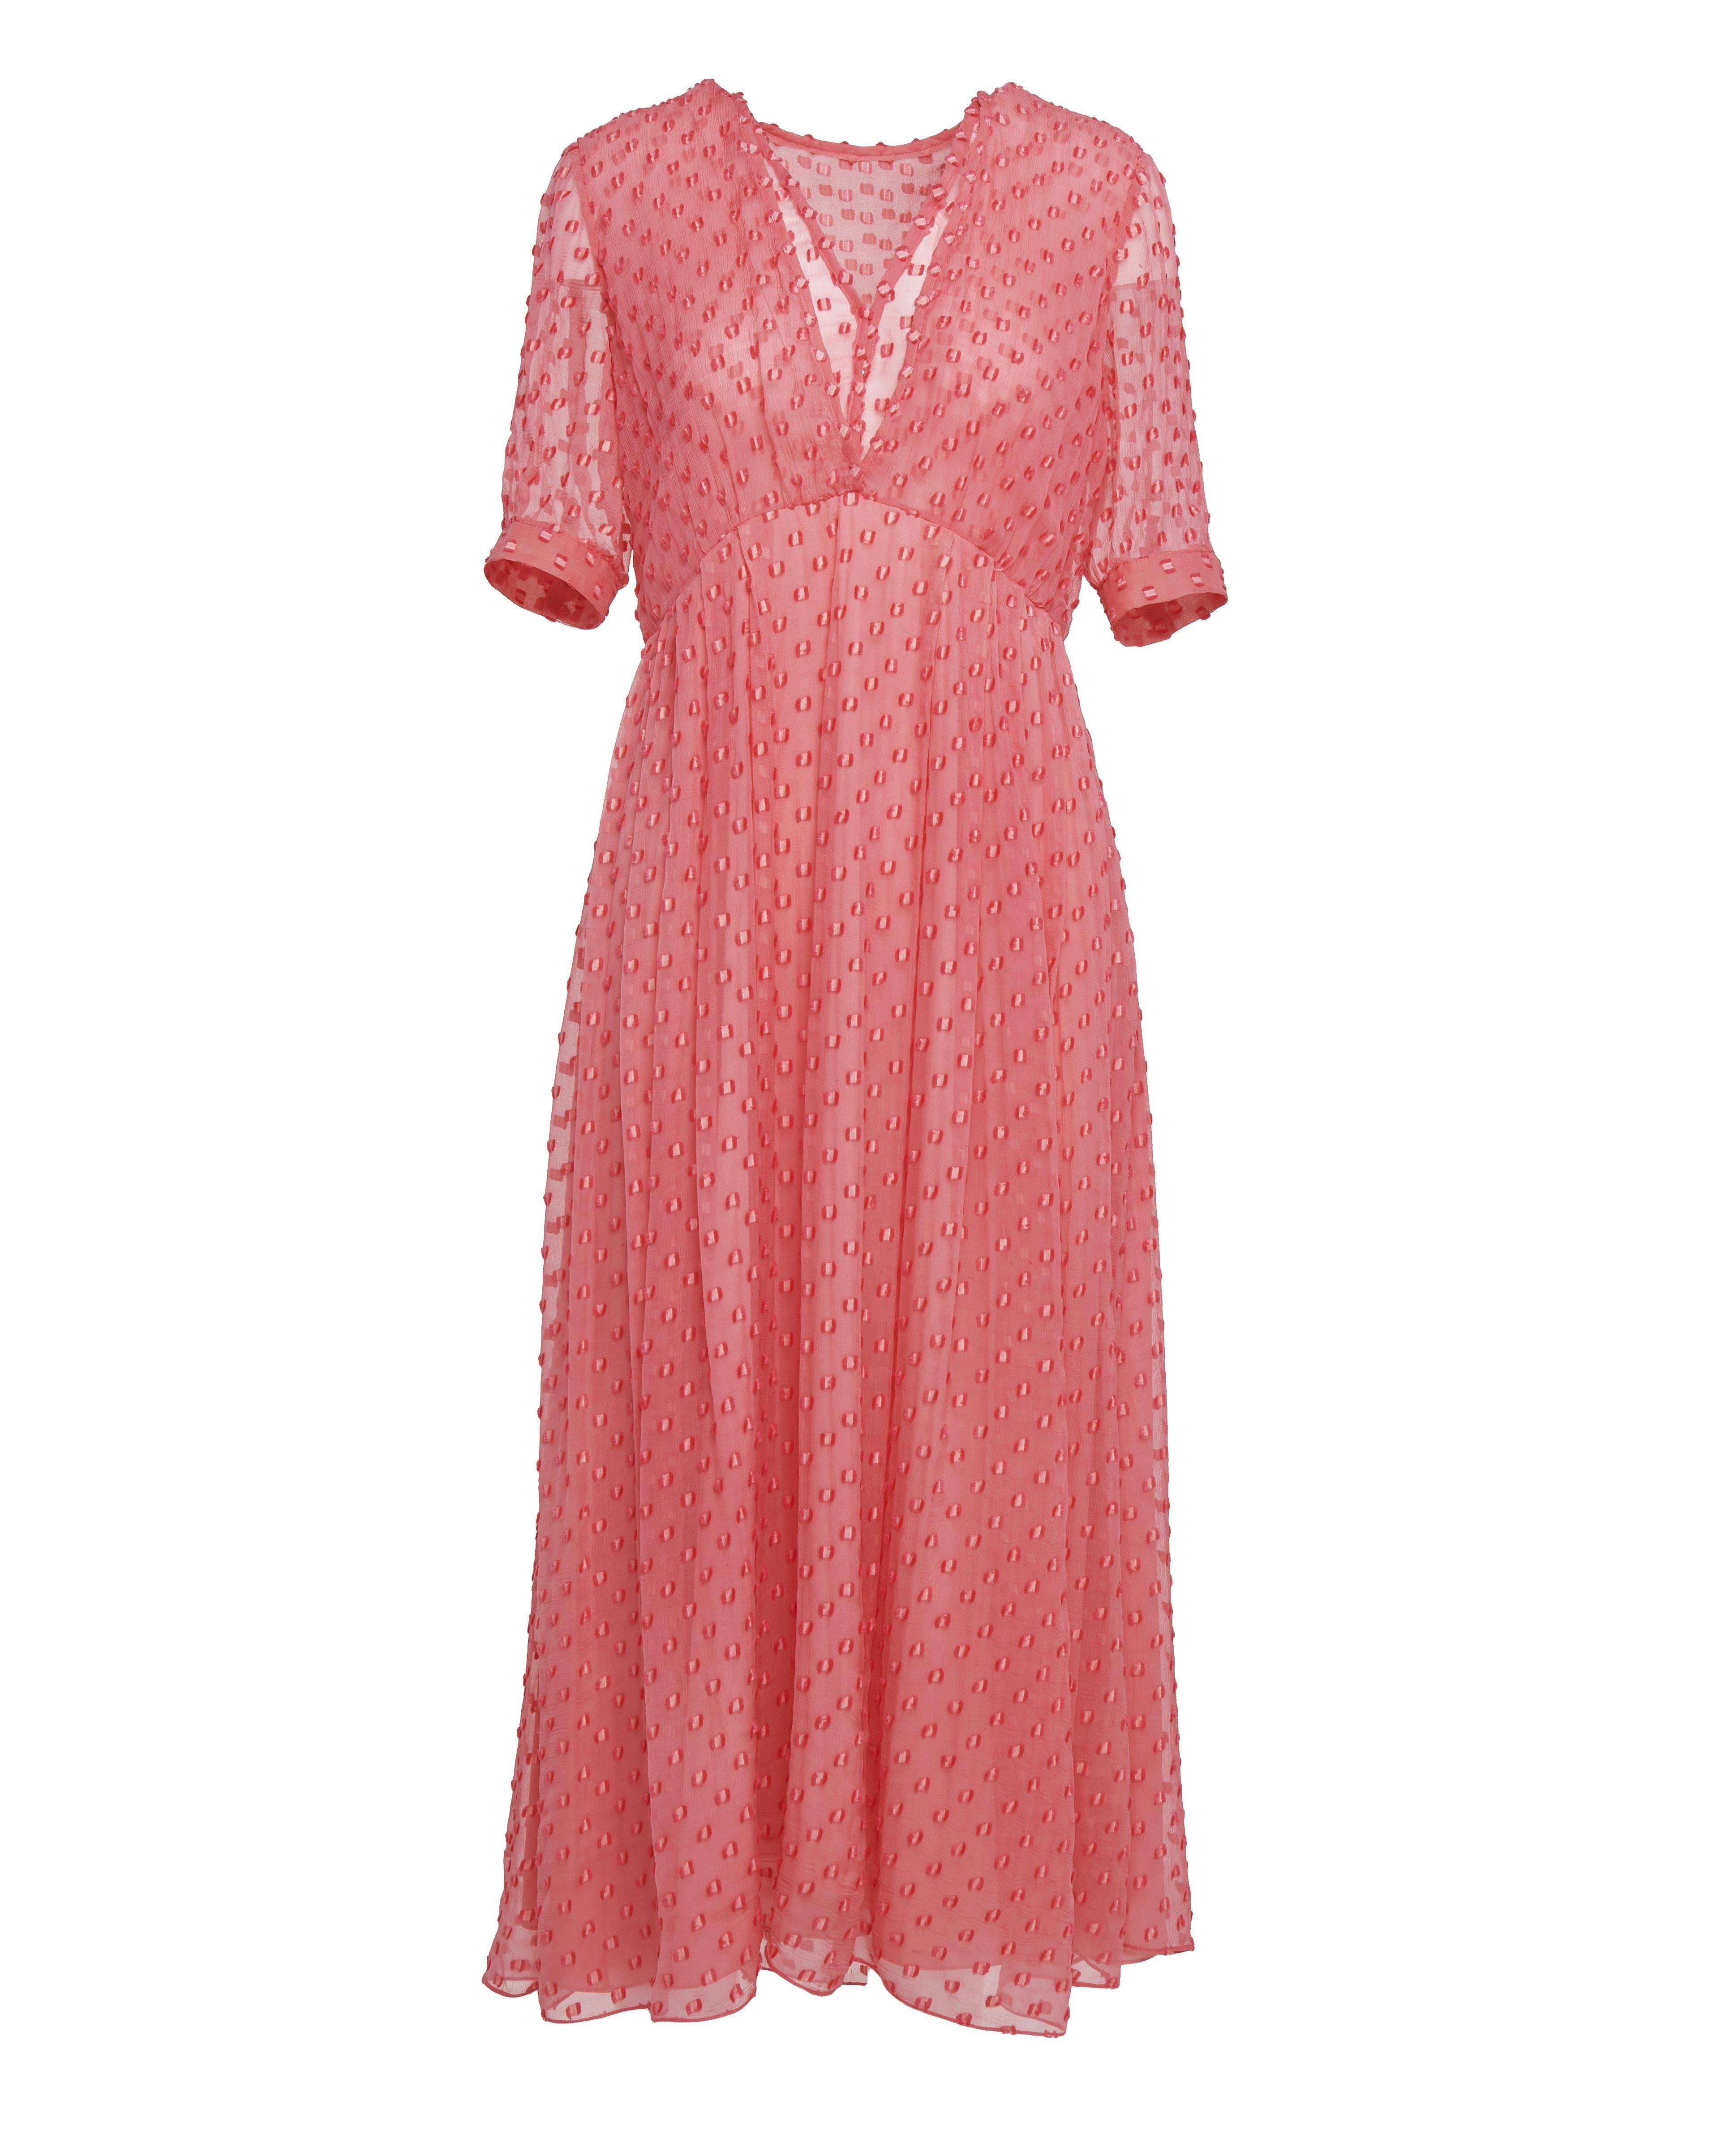 The Ivy Dress   Coral 5